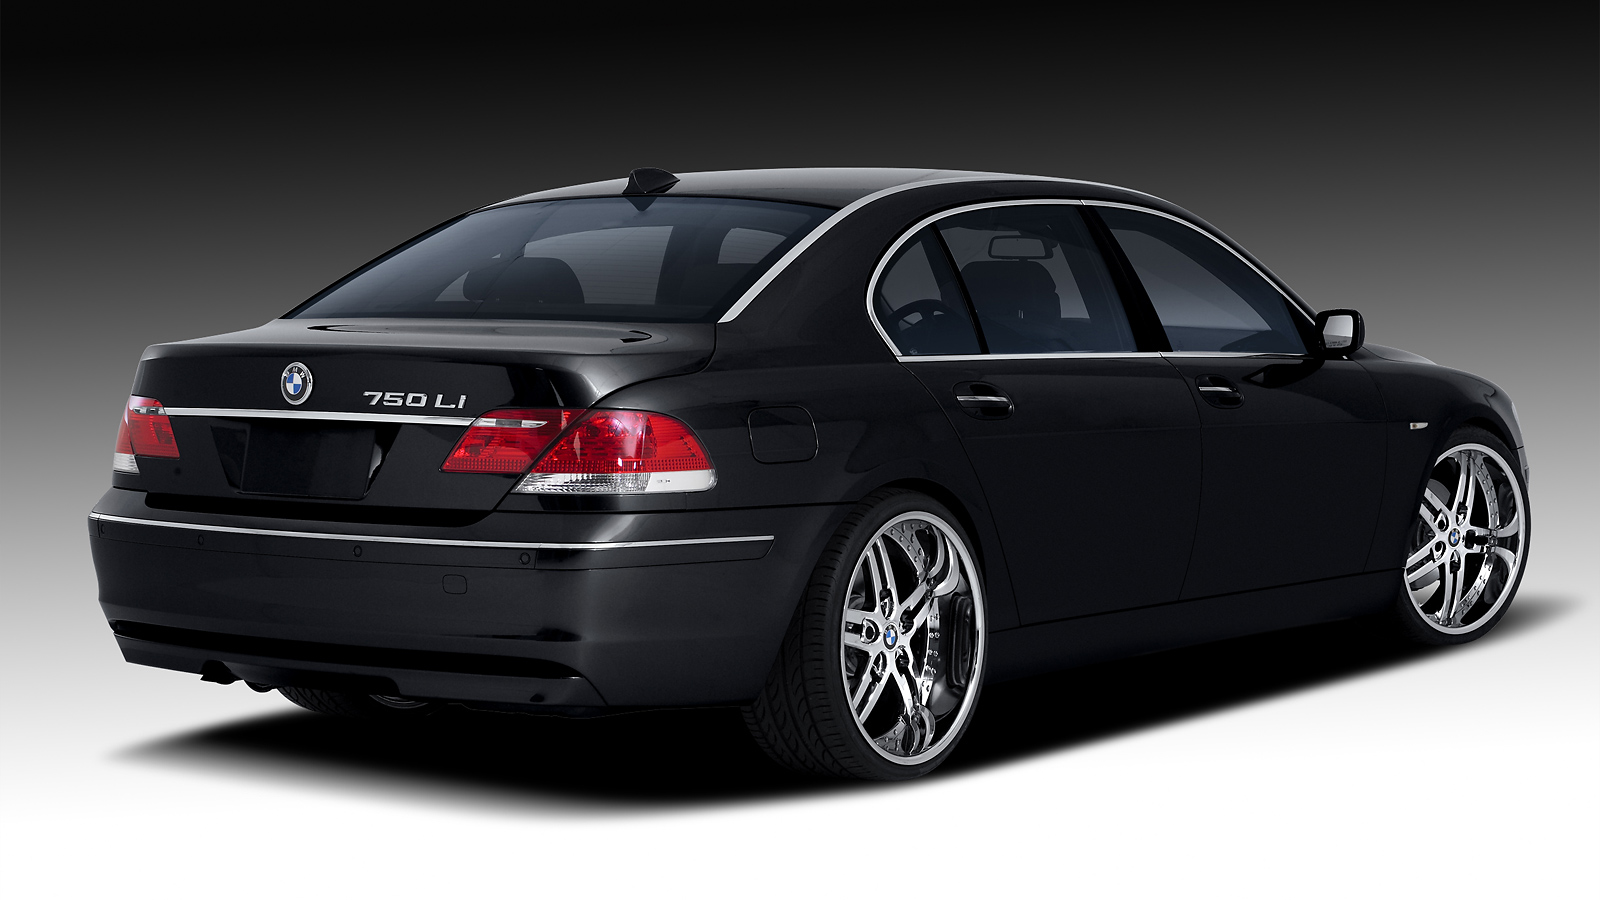 Fashion Hairstyle Celebrities BMW 7 Series